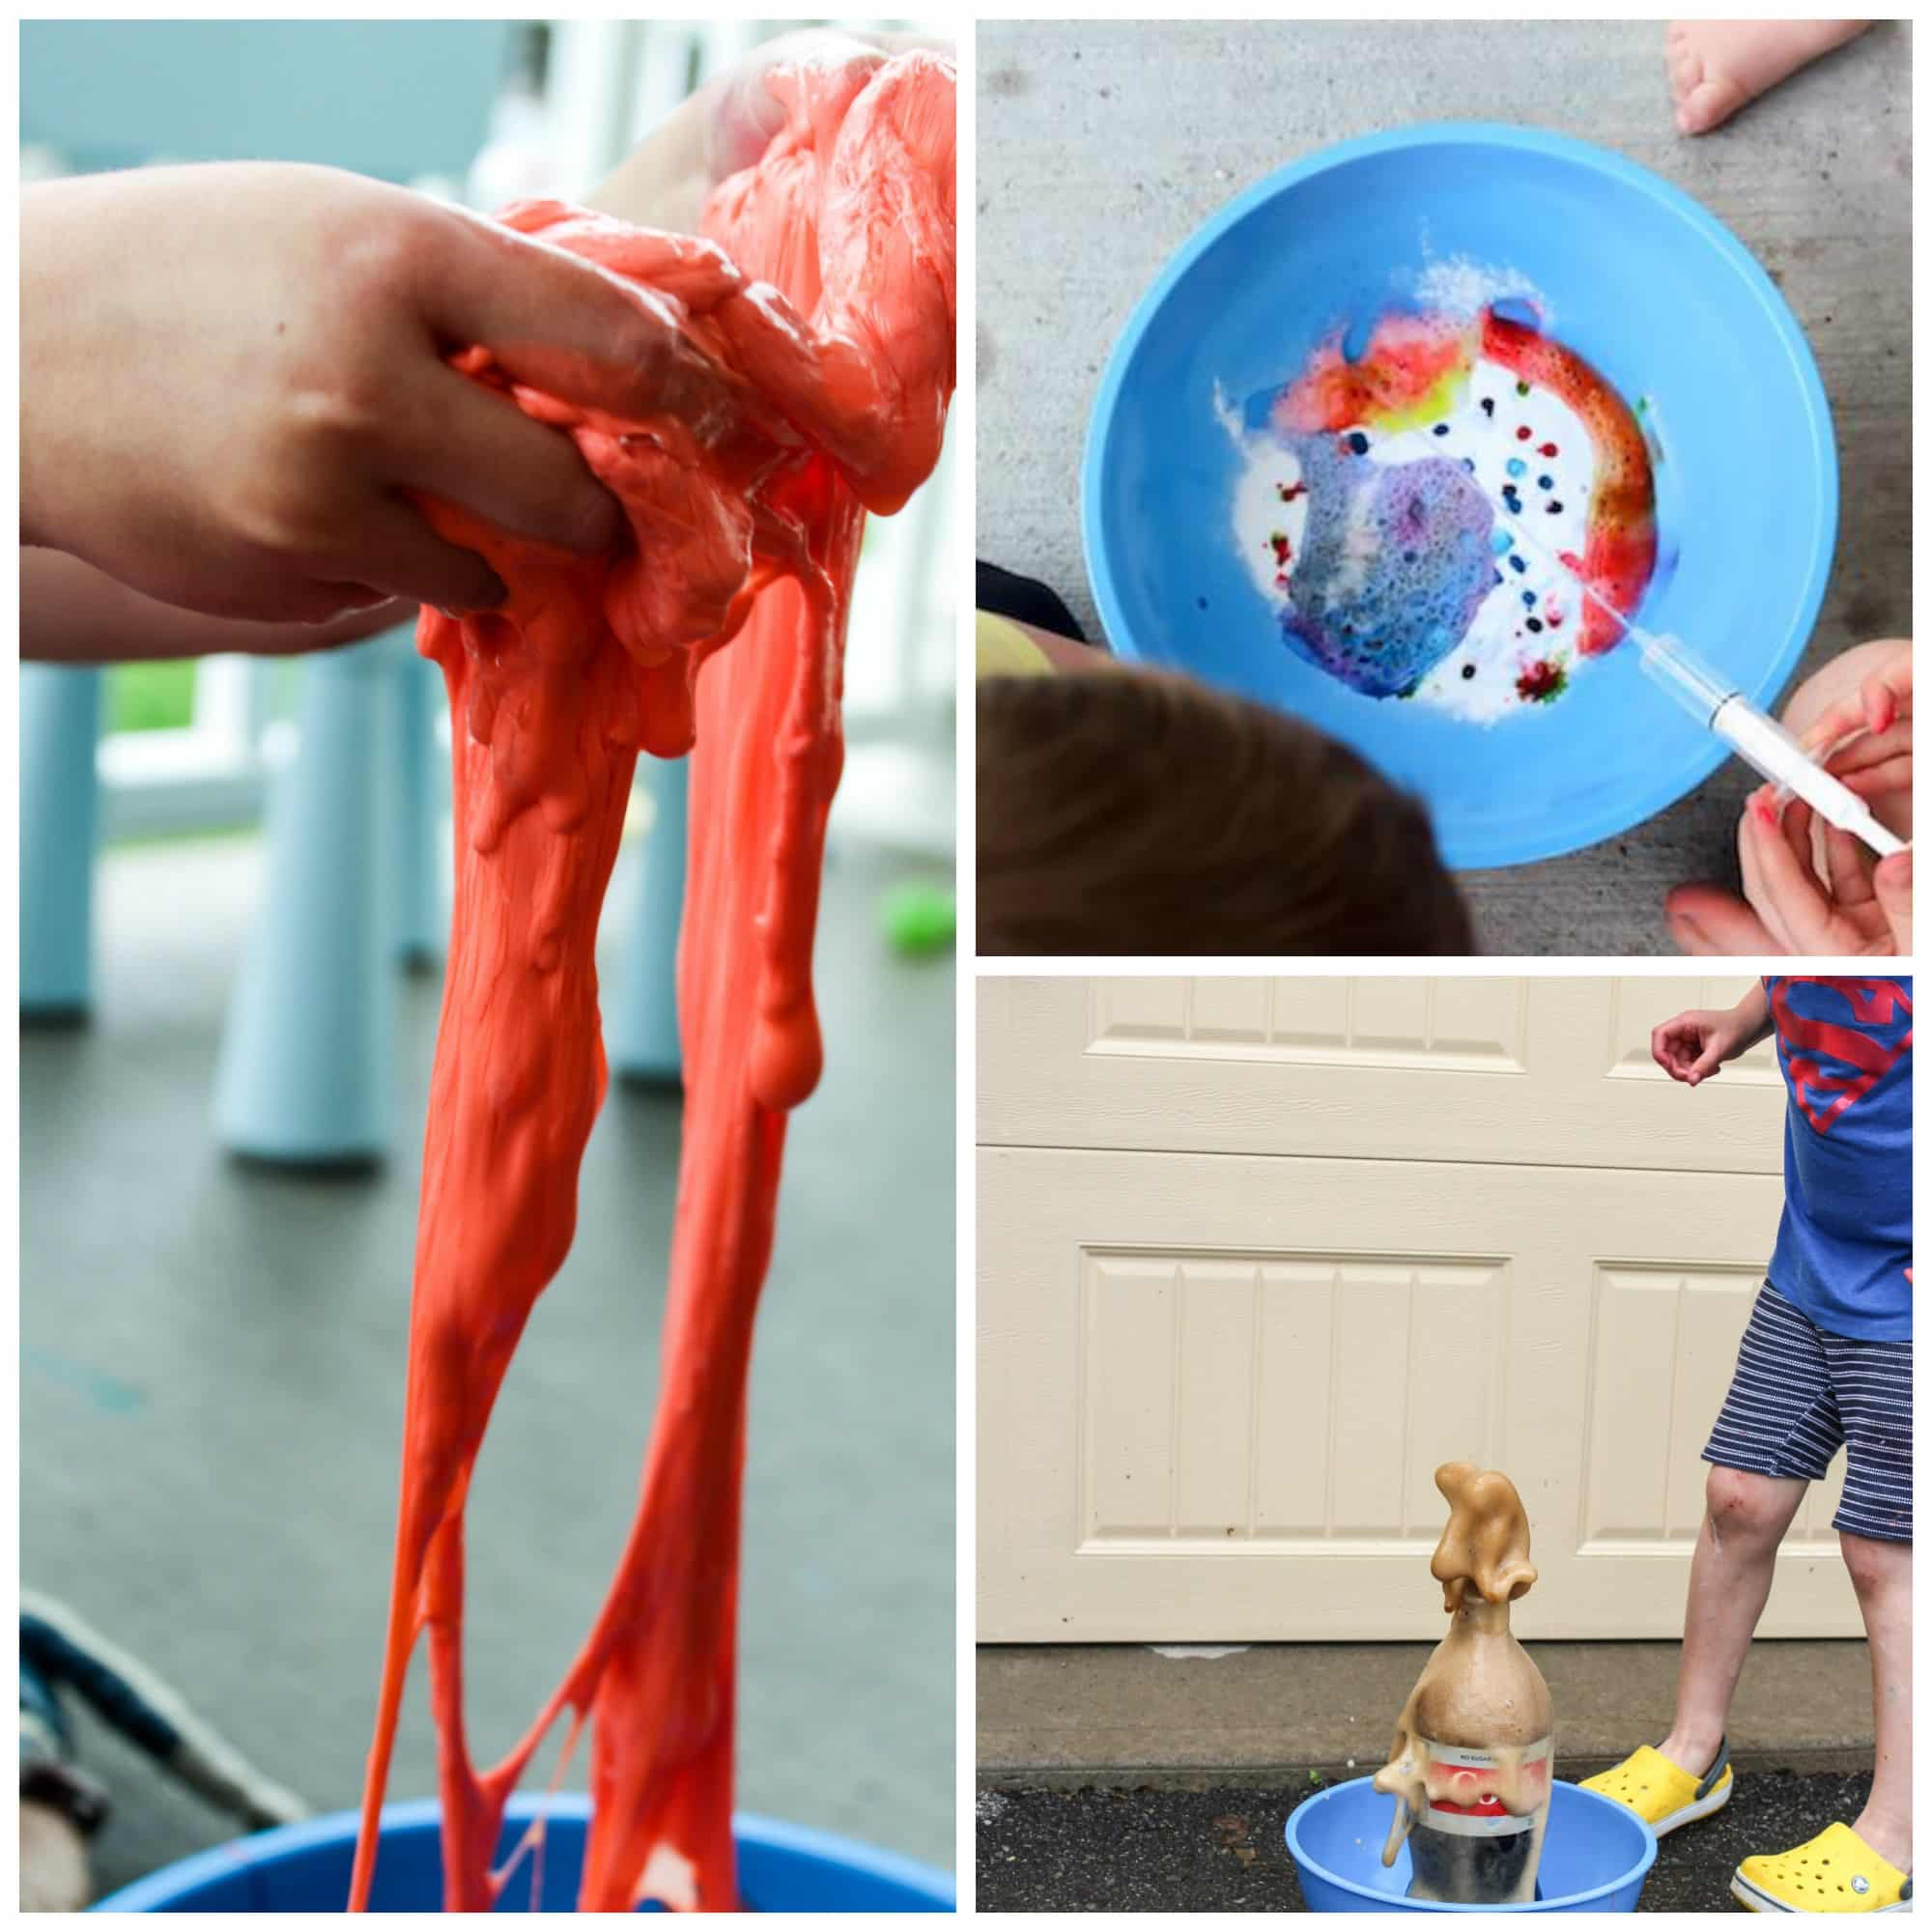 It doesn't take a science degree to execute simple science activities for preschoolers. In fact, all you need are common household items and minimal prep to teach children about physical and chemical reactions. Find basic ideas to promote physics and biology as well as three science activities for preschoolers here.